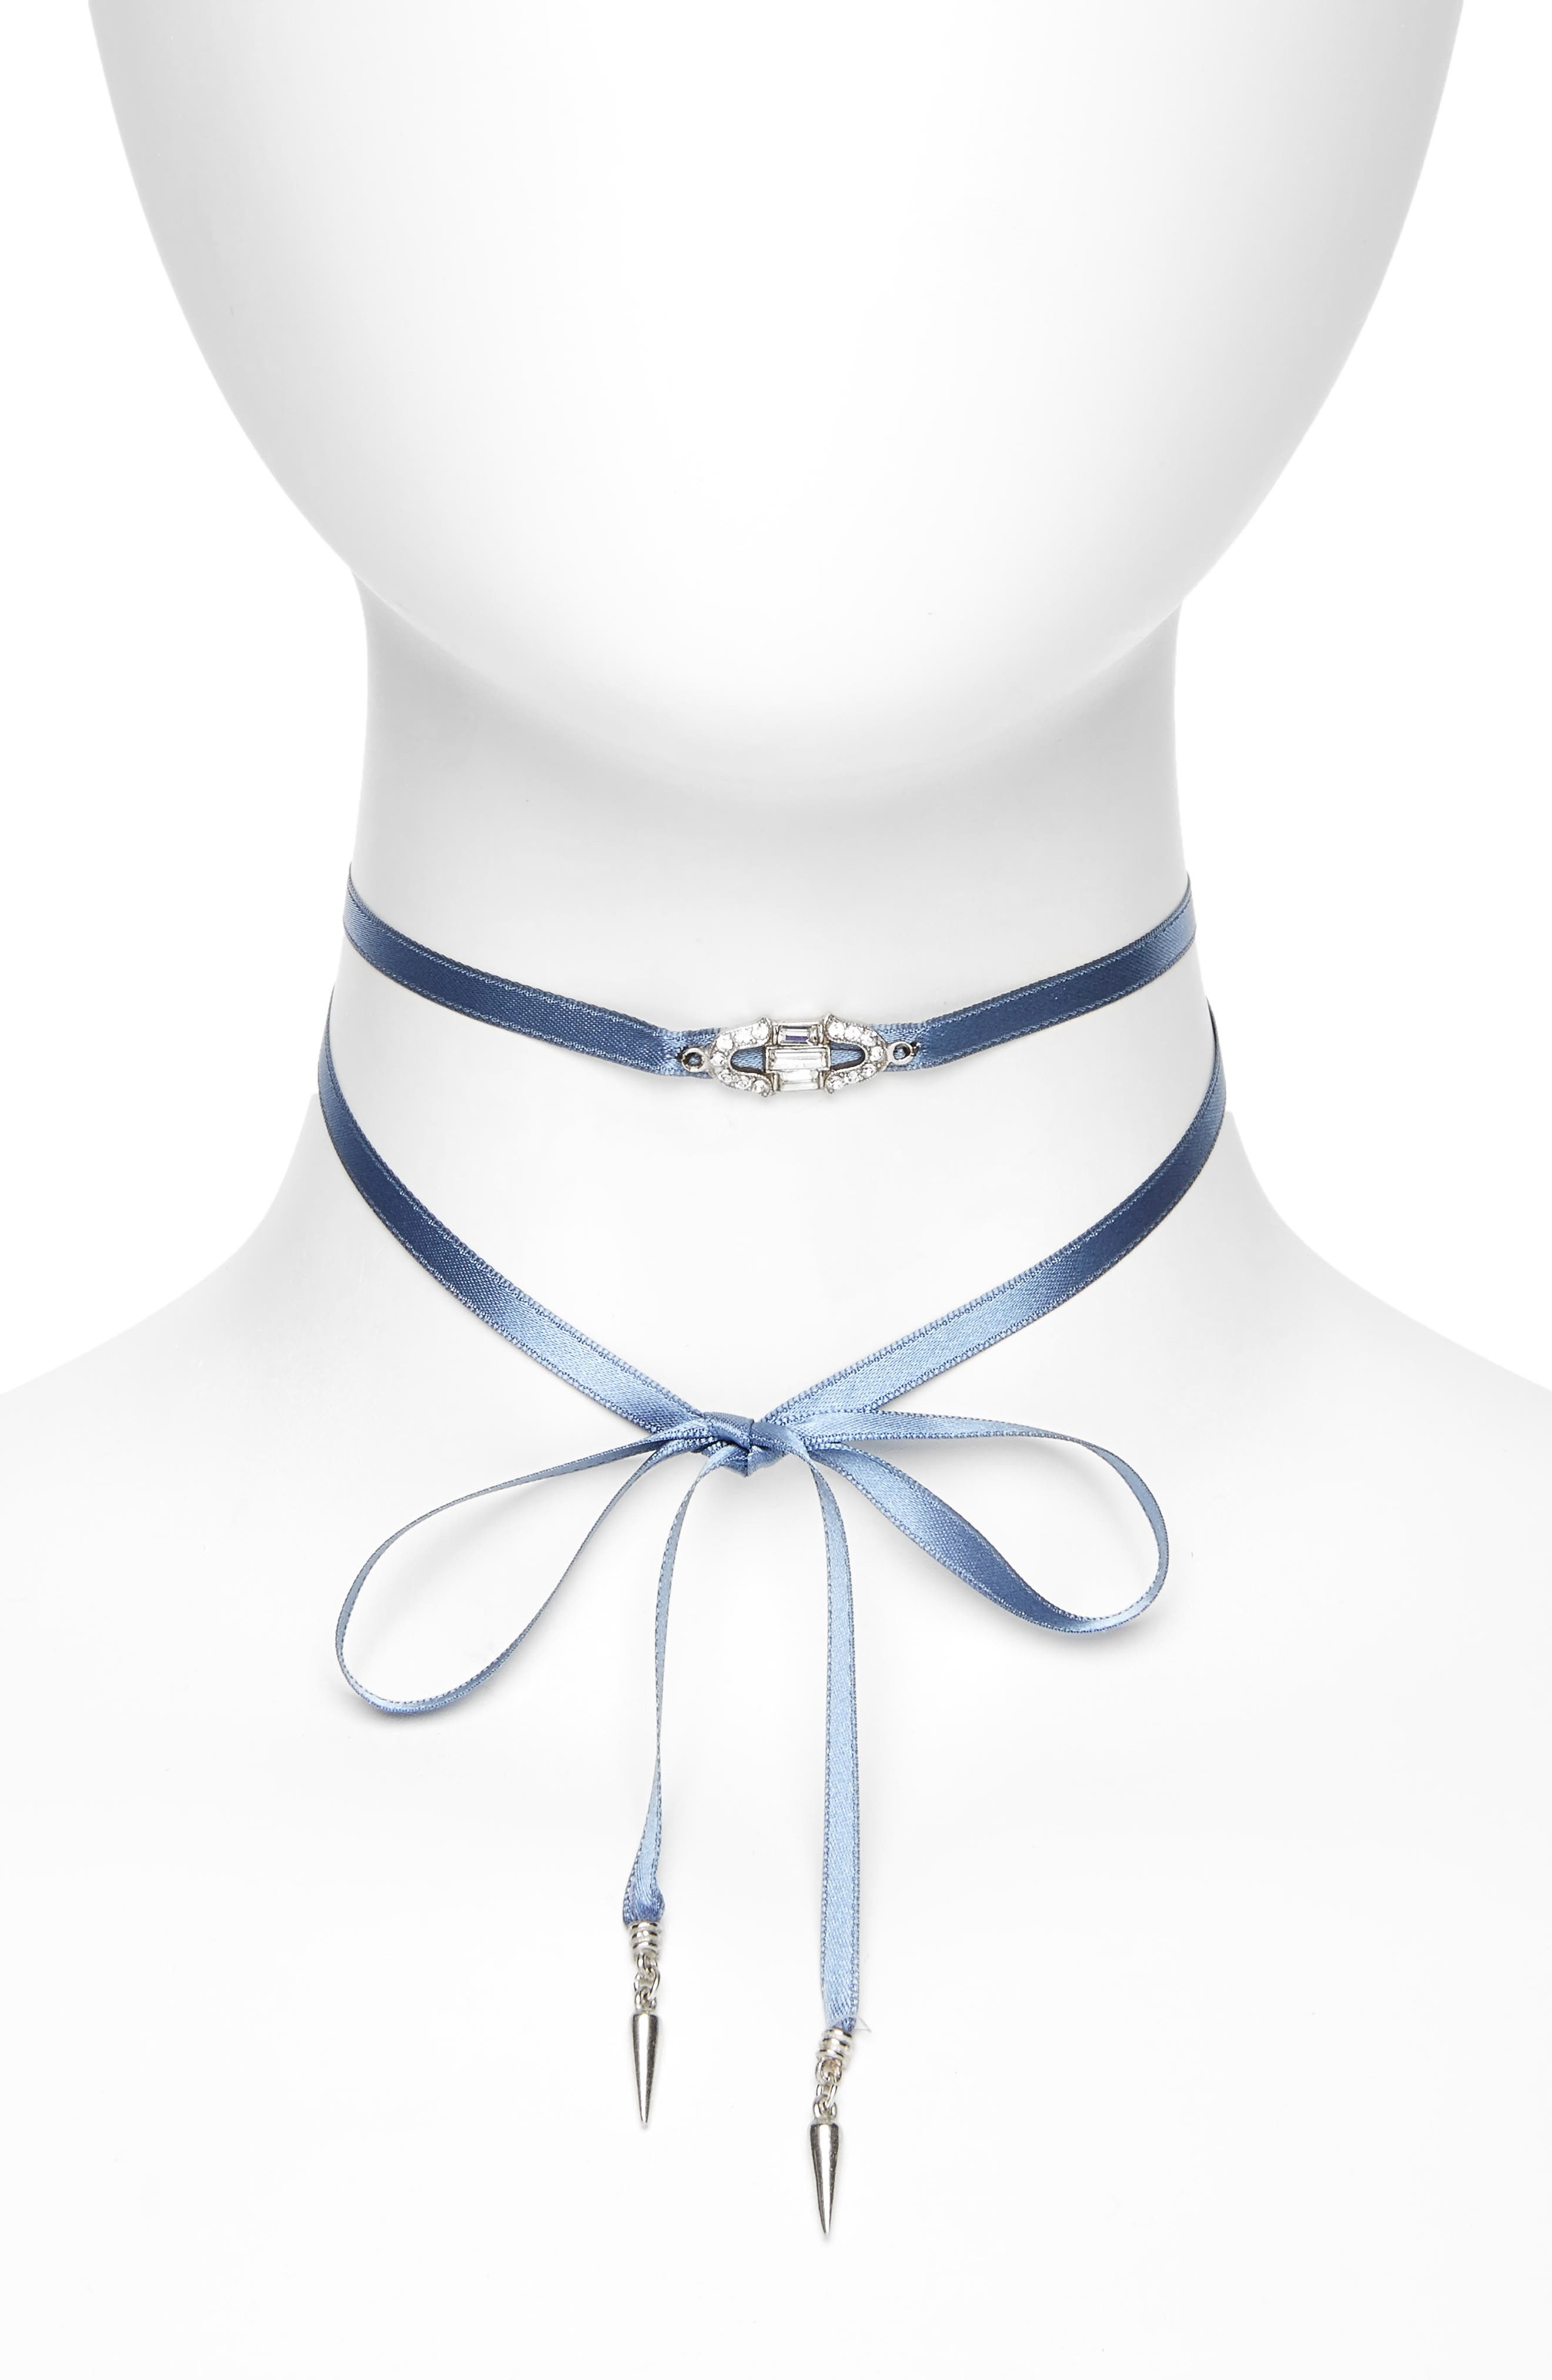 Main Image - Ben-Amur Deco Wrap Choker Necklace